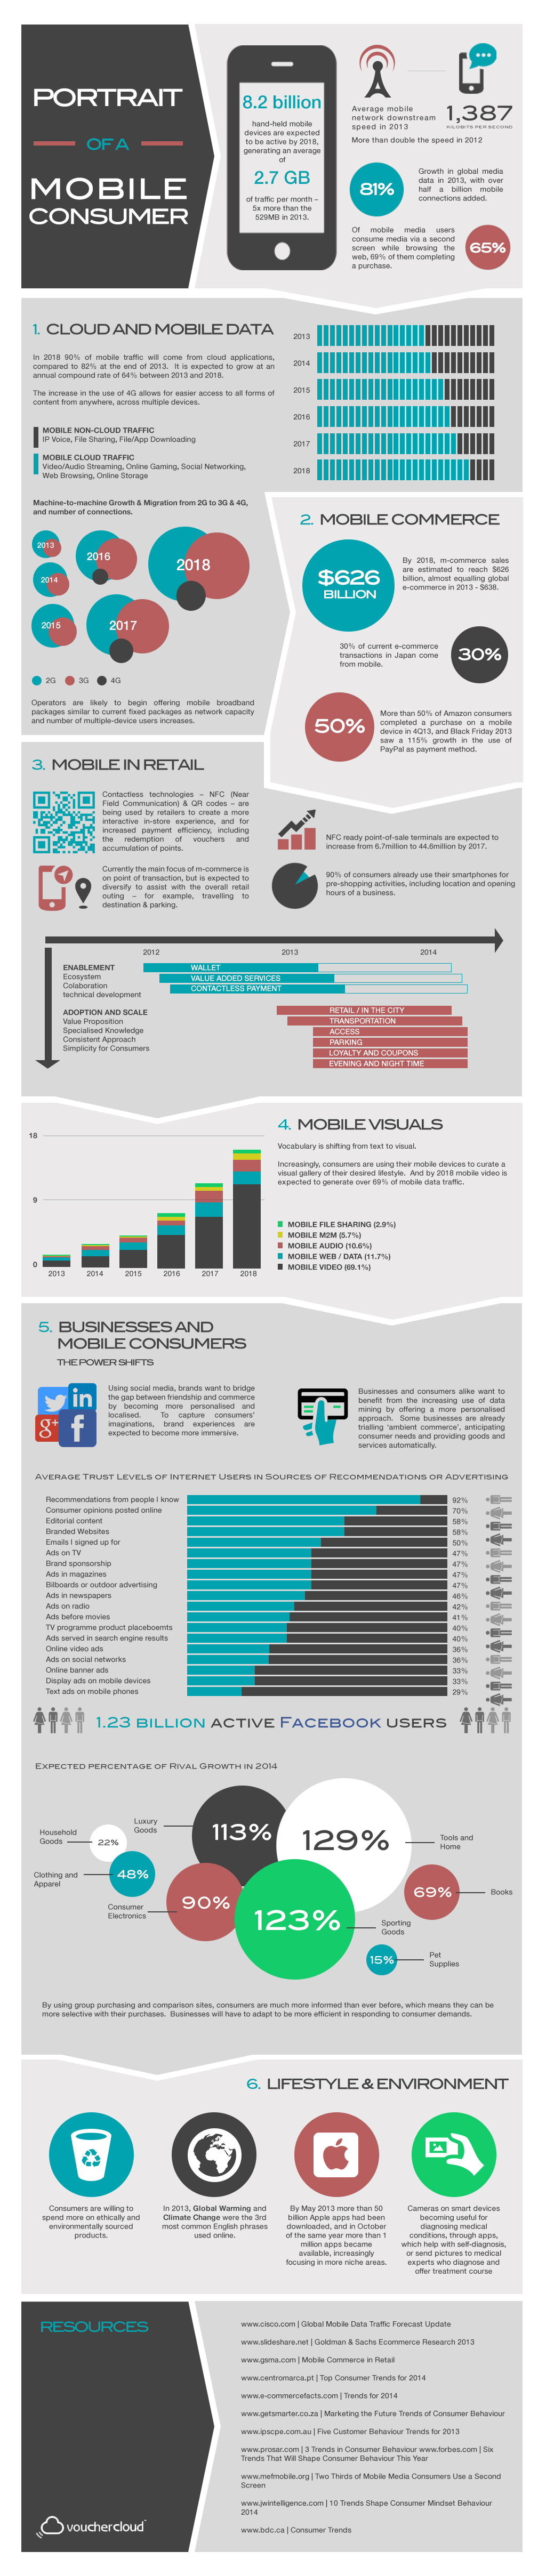 email_instant_mobile_consumer_infographic